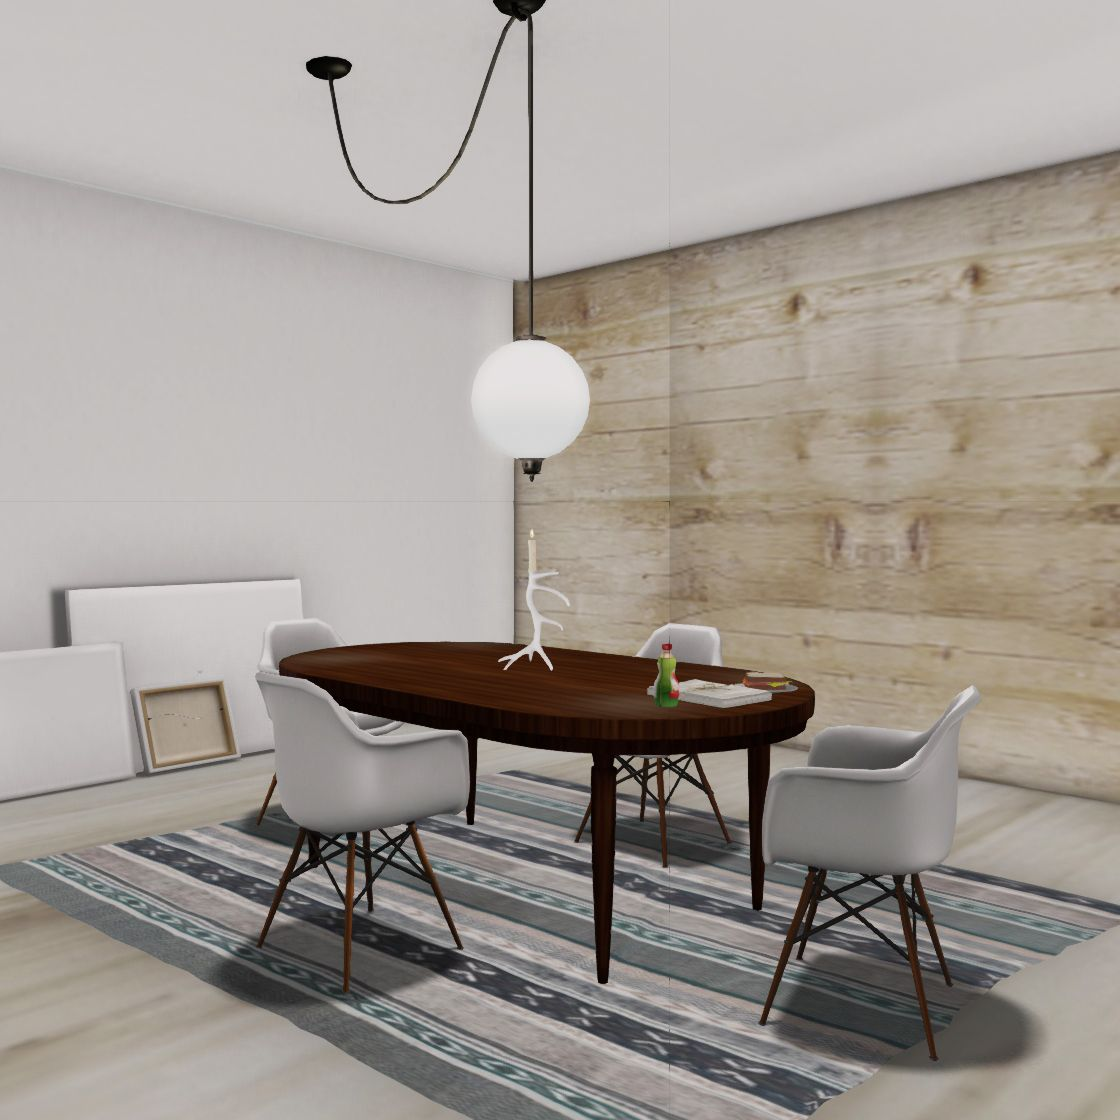 Pendant lighting with long cord and hooks google search - How to hang lights in room ...